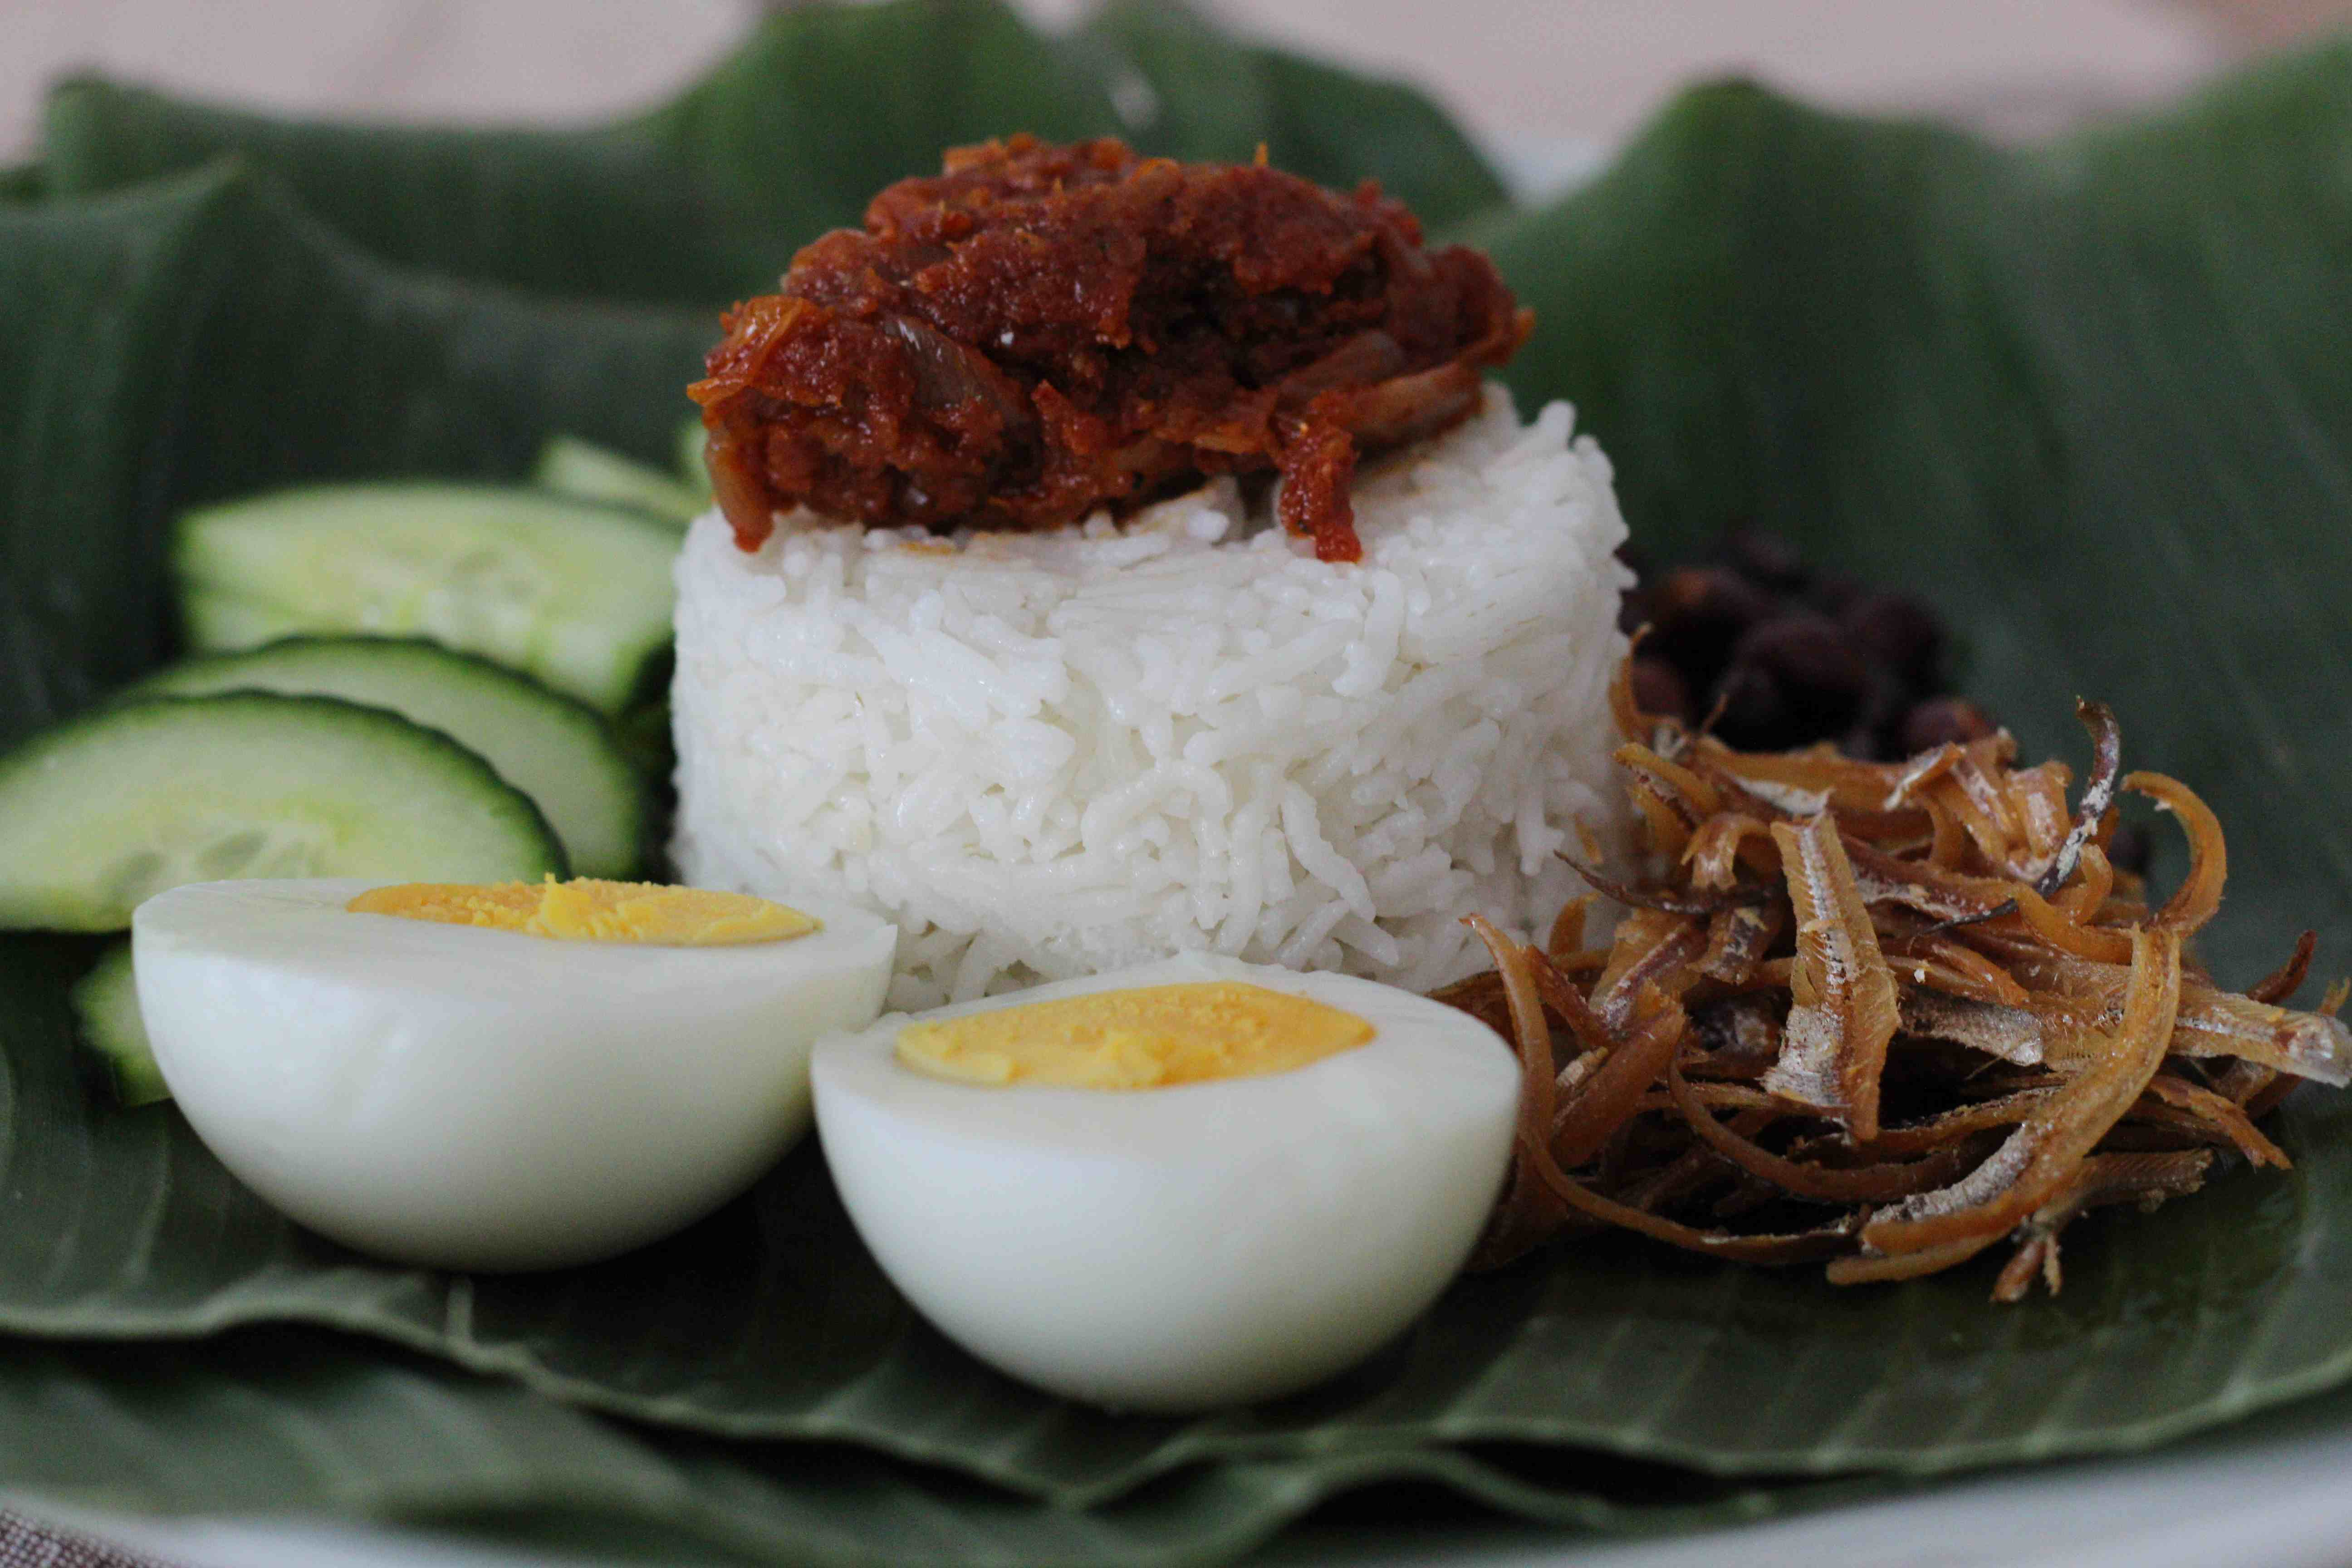 malaysia famous food nasi lemak Known as one of the national dishes of malaysia, nasi lemak is a comfort food and a dish to truly look forward to there are a number of variations to the dish: the traditional triangle of rice wrapped in a banana leaf (kind of as a snack) and a meal version served on a plate.